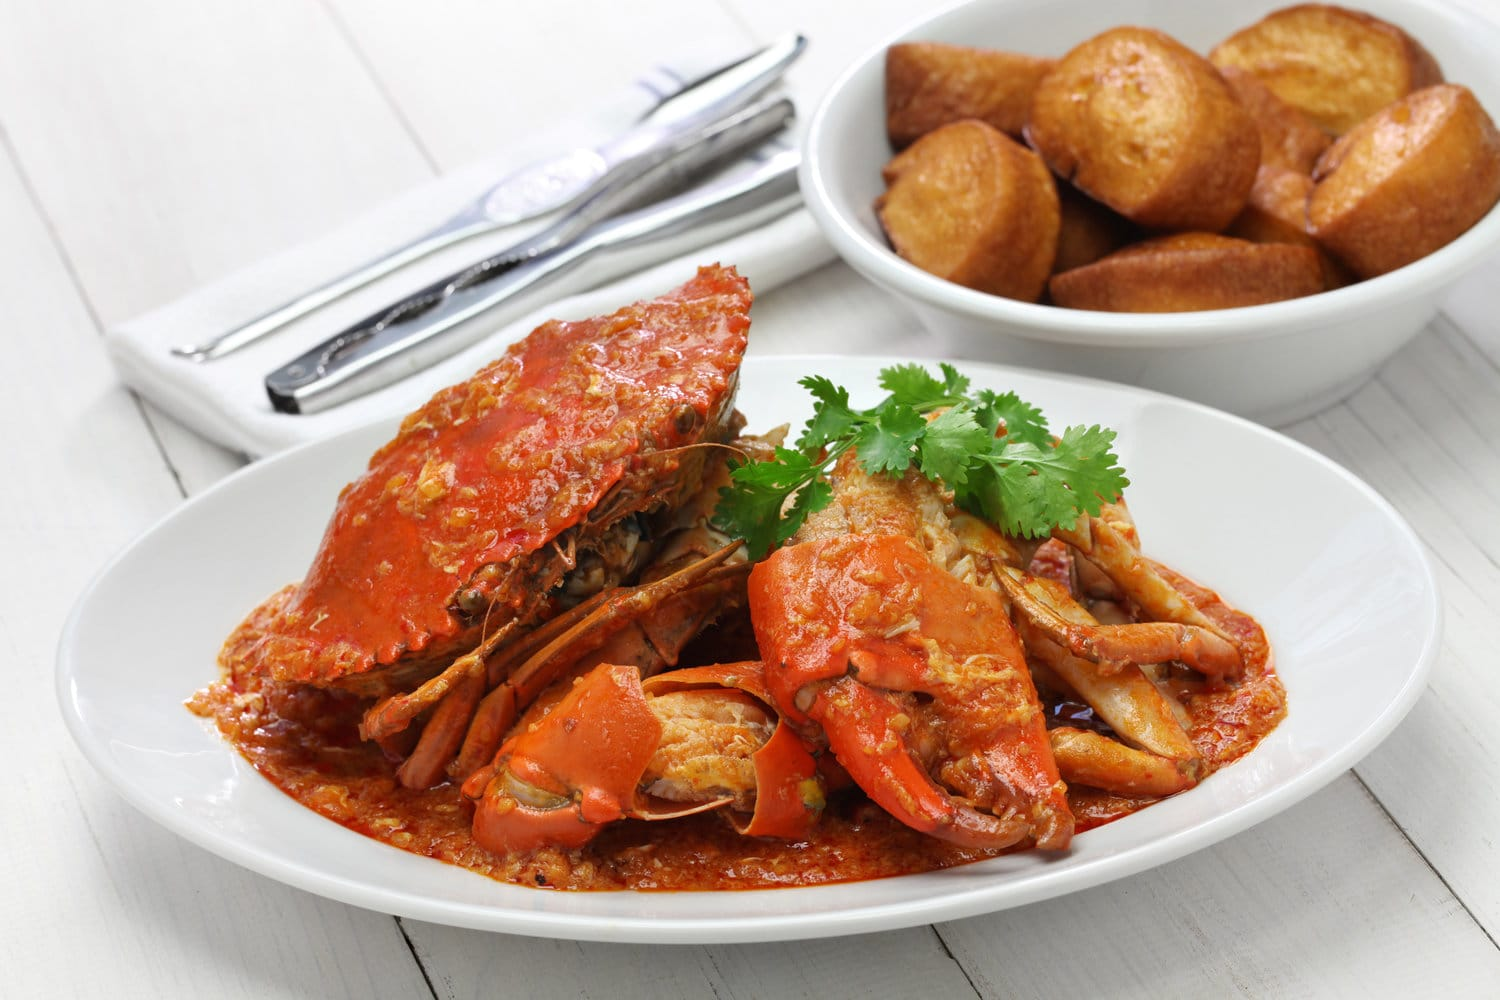 Singapore Chili Crab With Fried Mantou